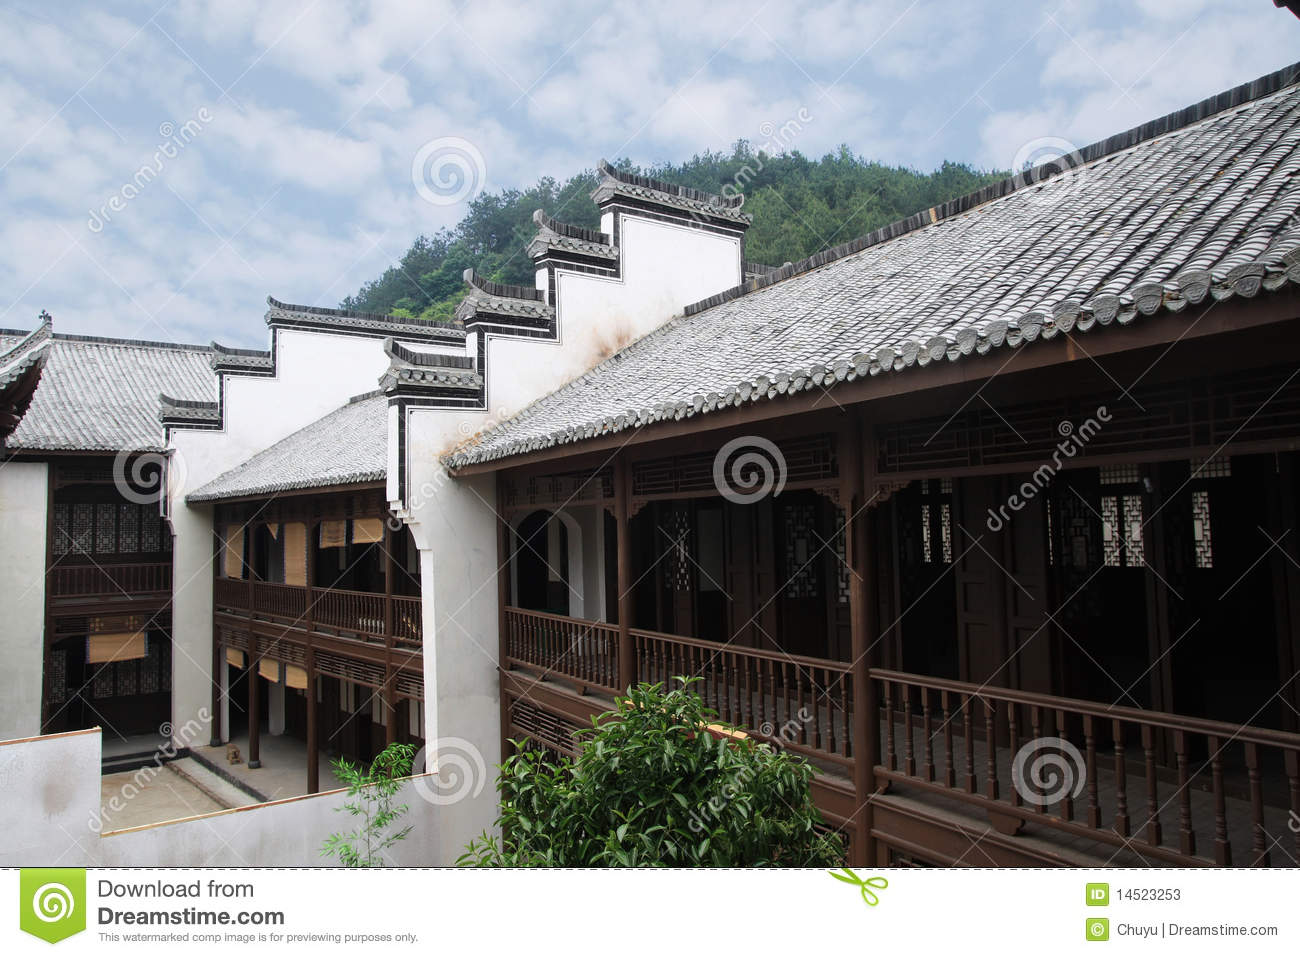 Chinese old house stock photos image 14523253 for Traditional house building